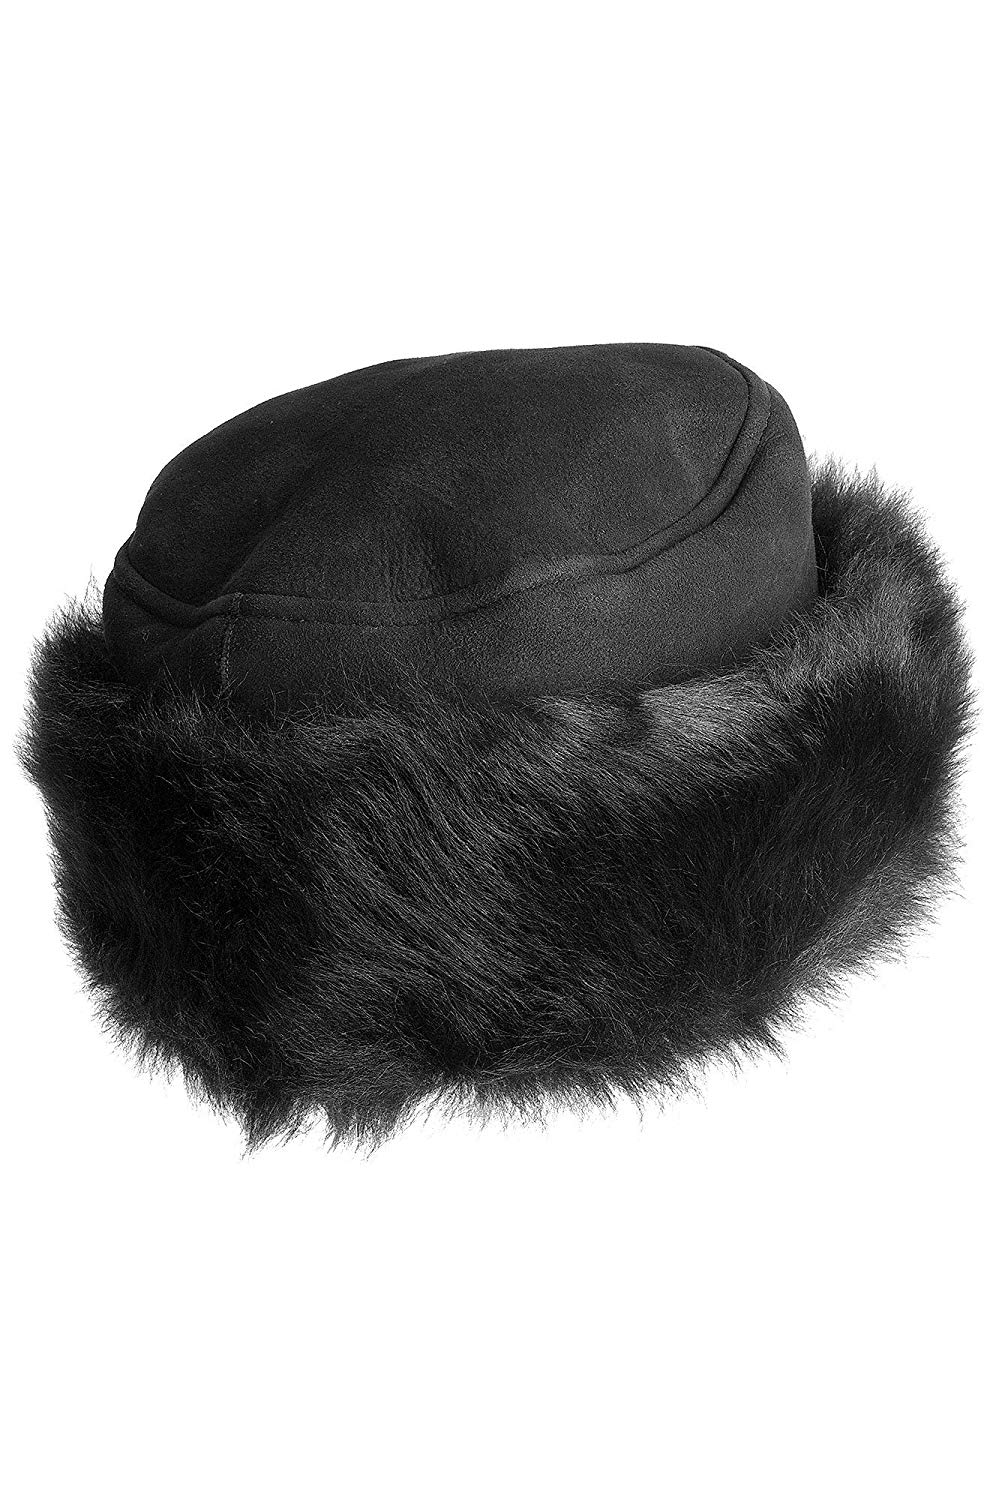 20b3ef037ca Get Quotations · Overland Sheepskin Co Russian Shearling Sheepskin Cossack  Hat with Toscana Trim